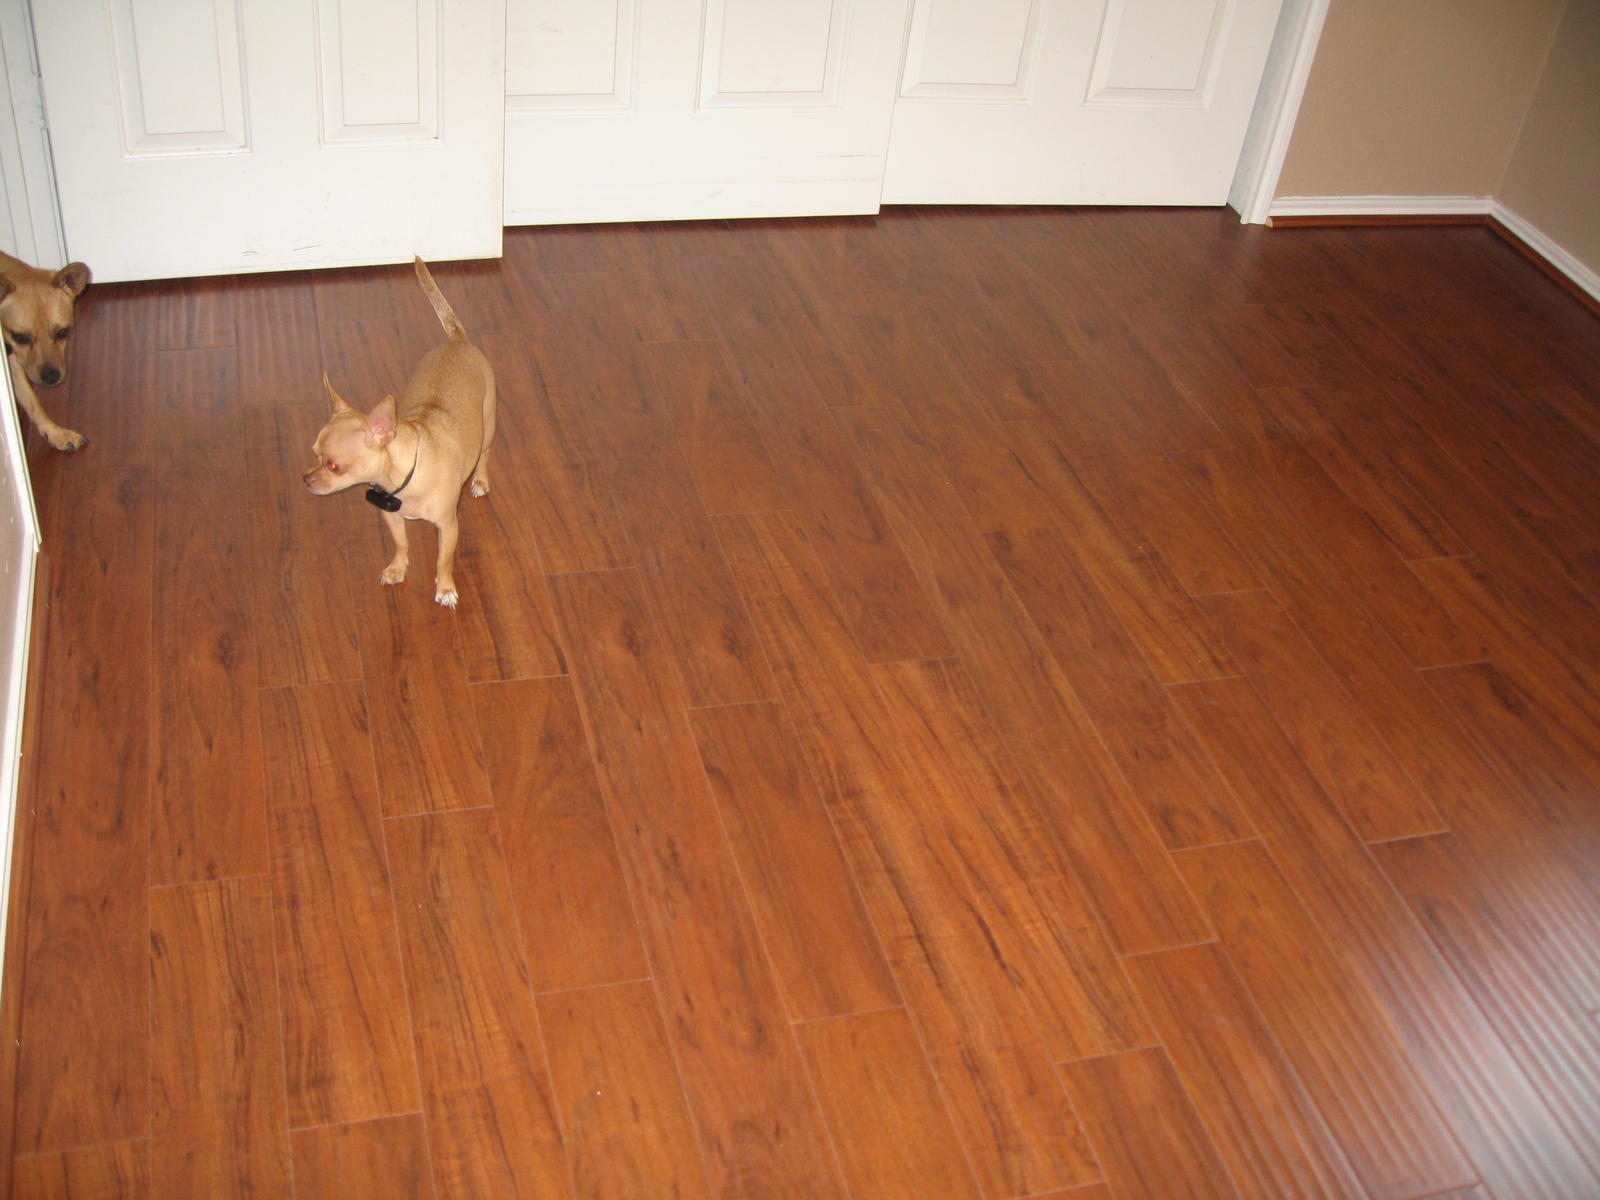 Laminate flooring best layout laminate flooring for Floor installers